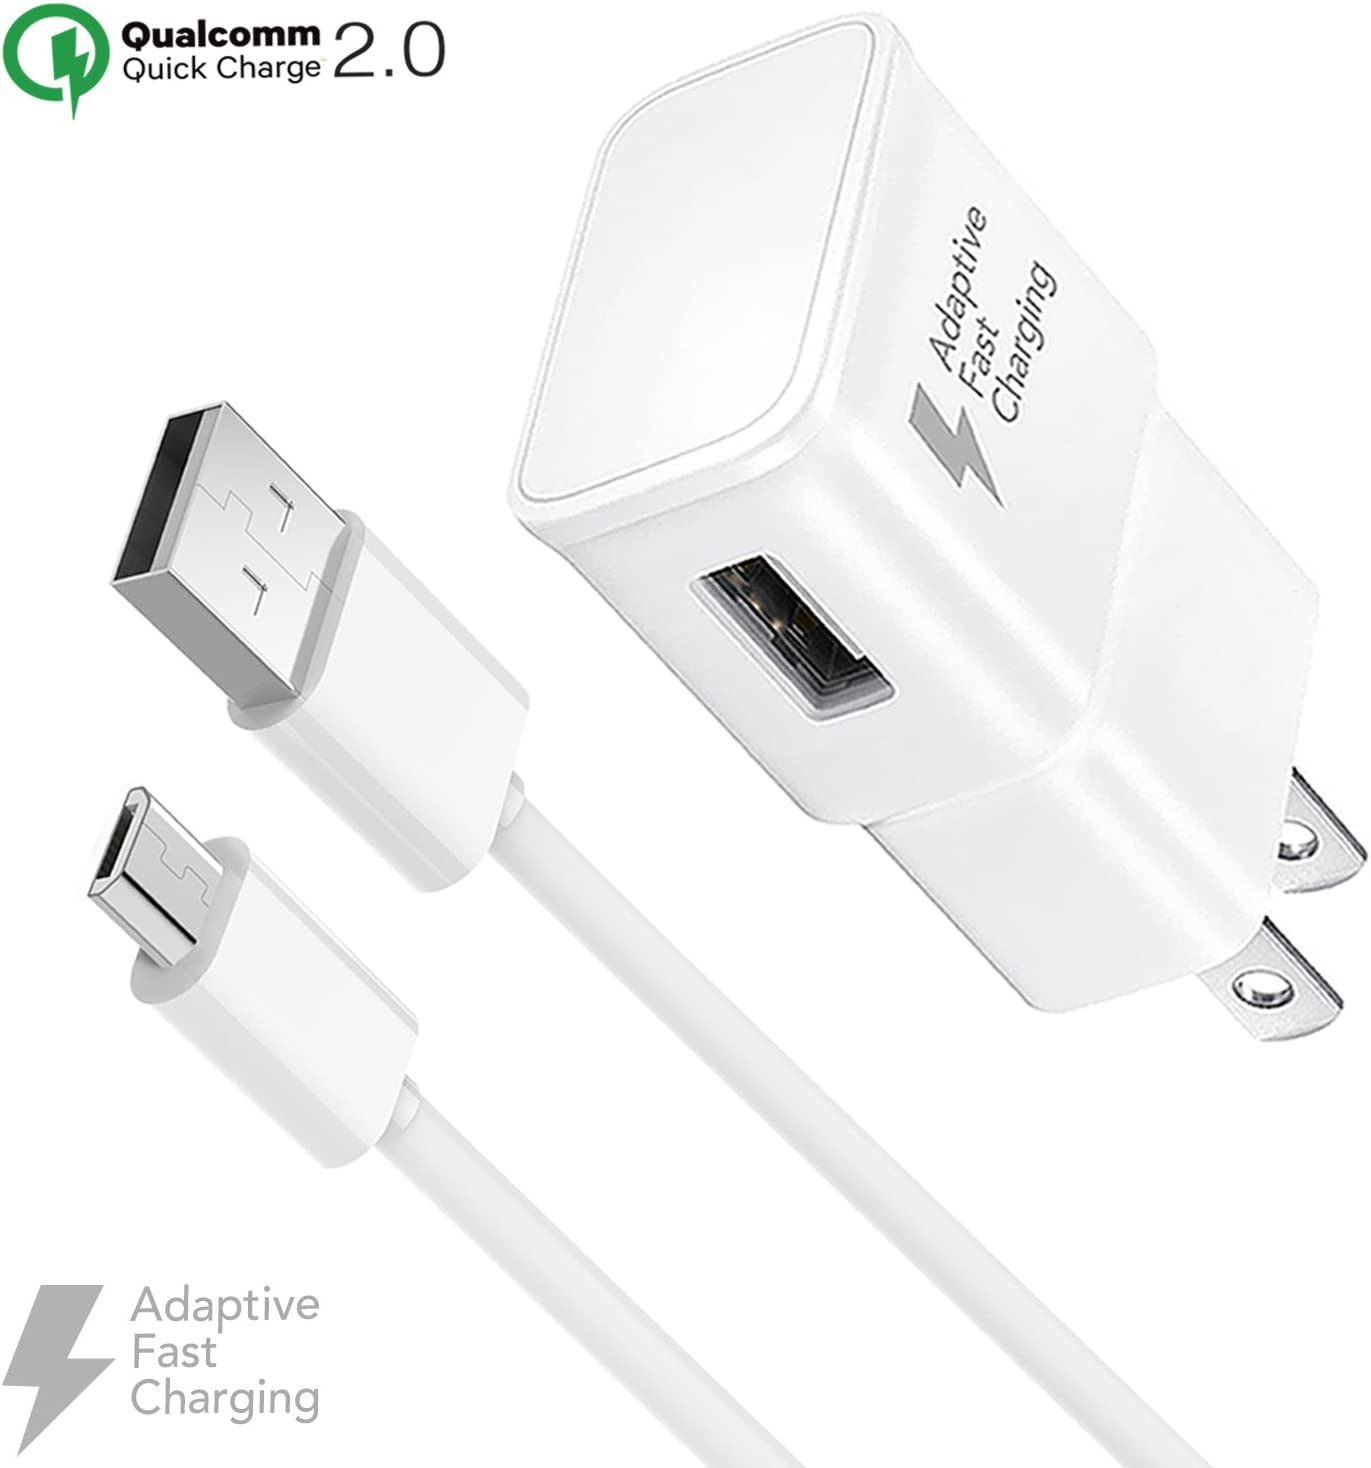 Ixir Adaptive Fast Charger Kit for Samsung Galaxy S7, Edge, J7, S6, Edge, Note 5, Note 4, Sony, HTC, Honor Lite 10, Moto G5, and More, Wall Charger ...